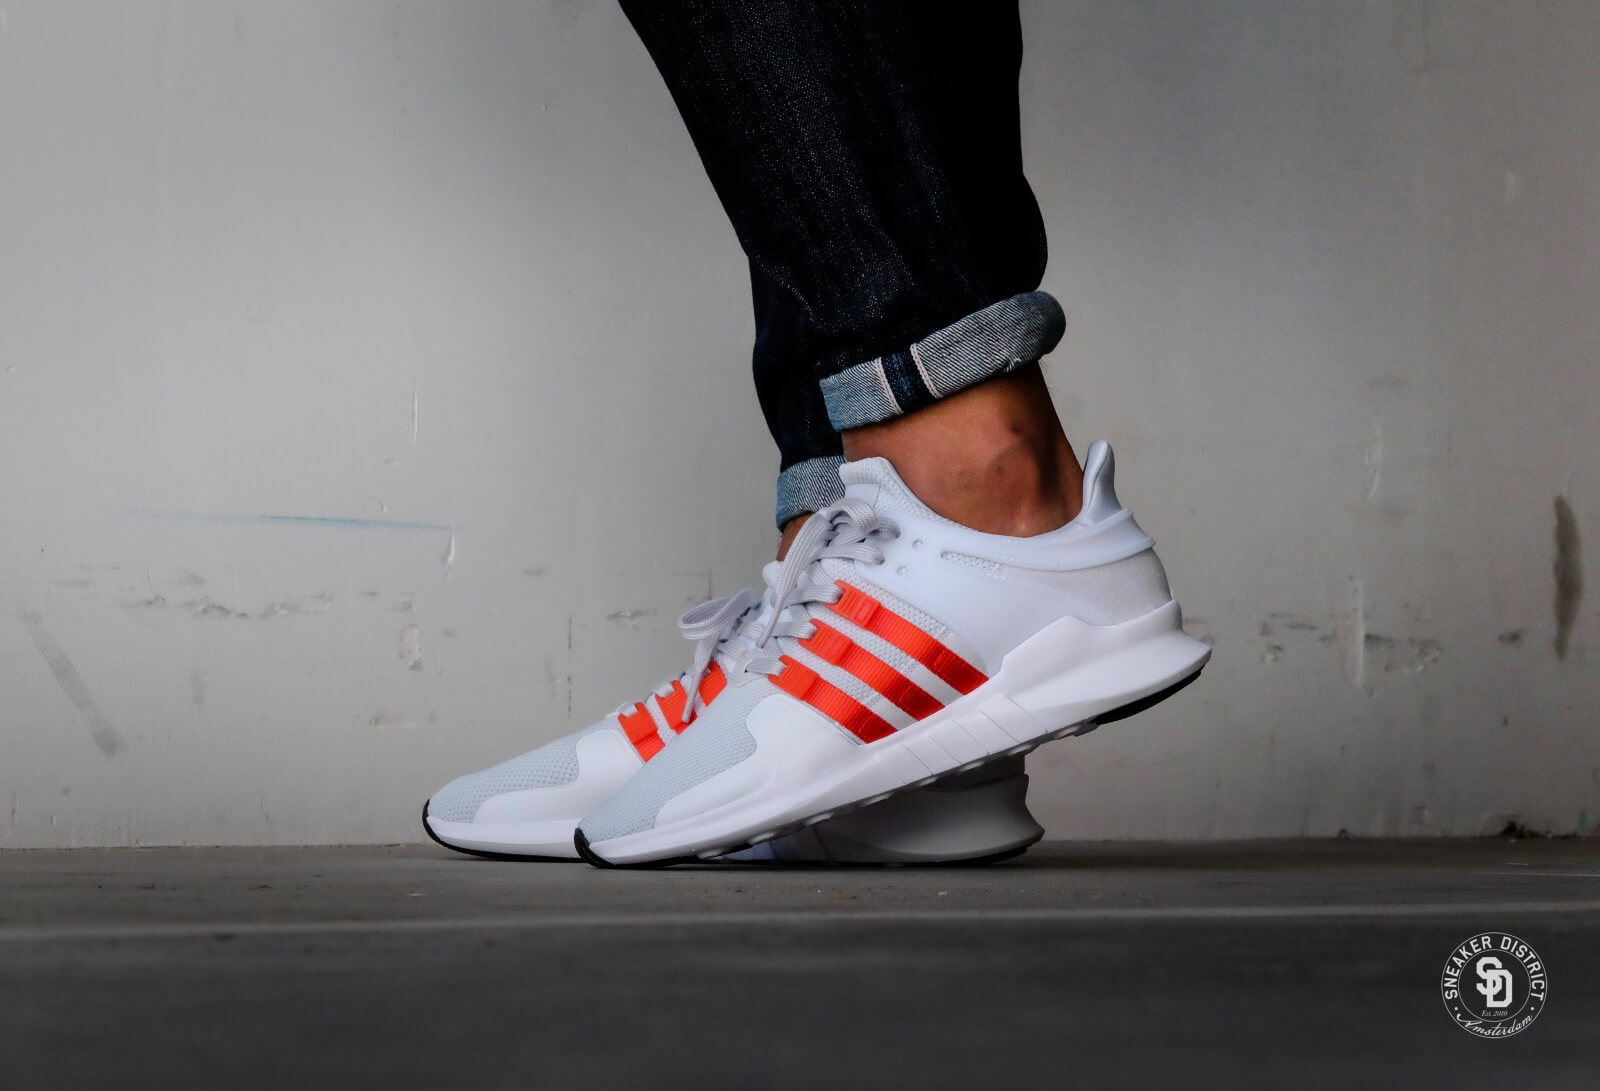 The Adidas EQT Support ADV/ Underrated sneaker